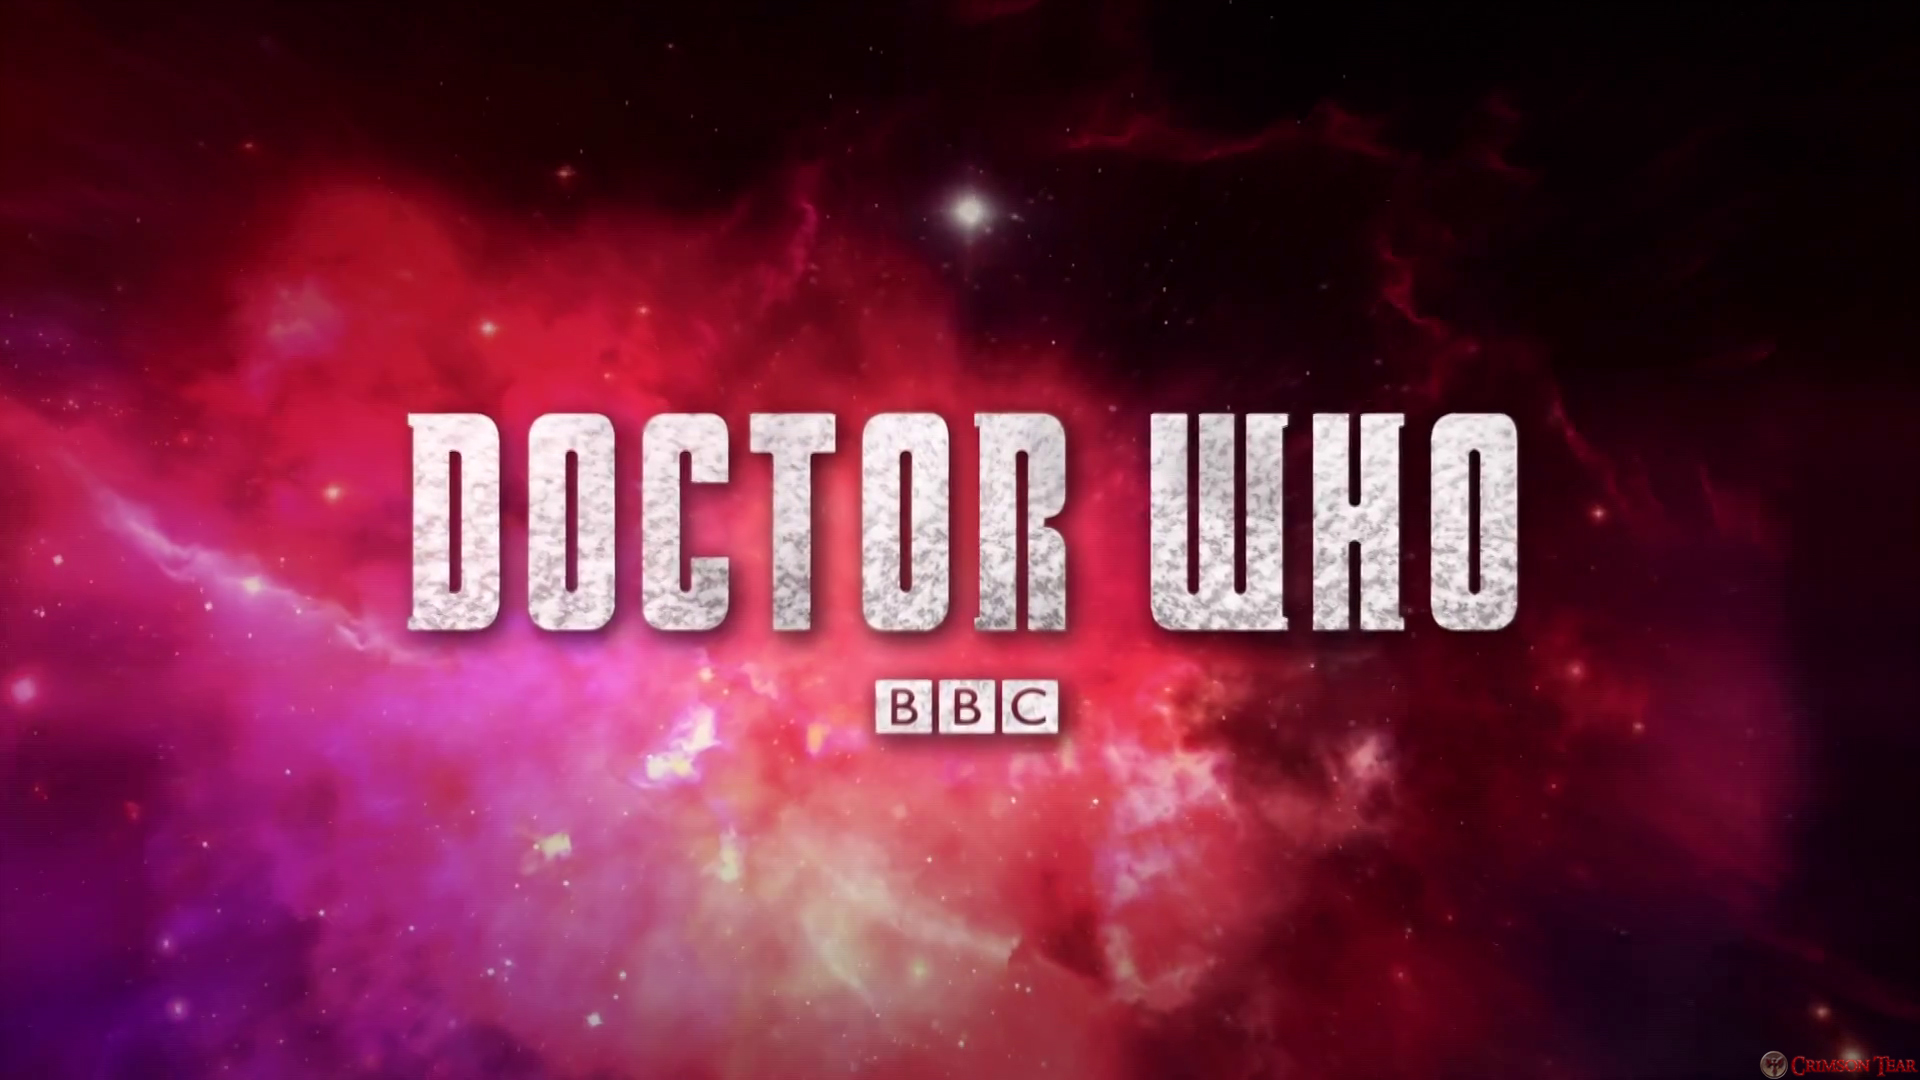 Doctor Who Wallpaper Crimson Tear